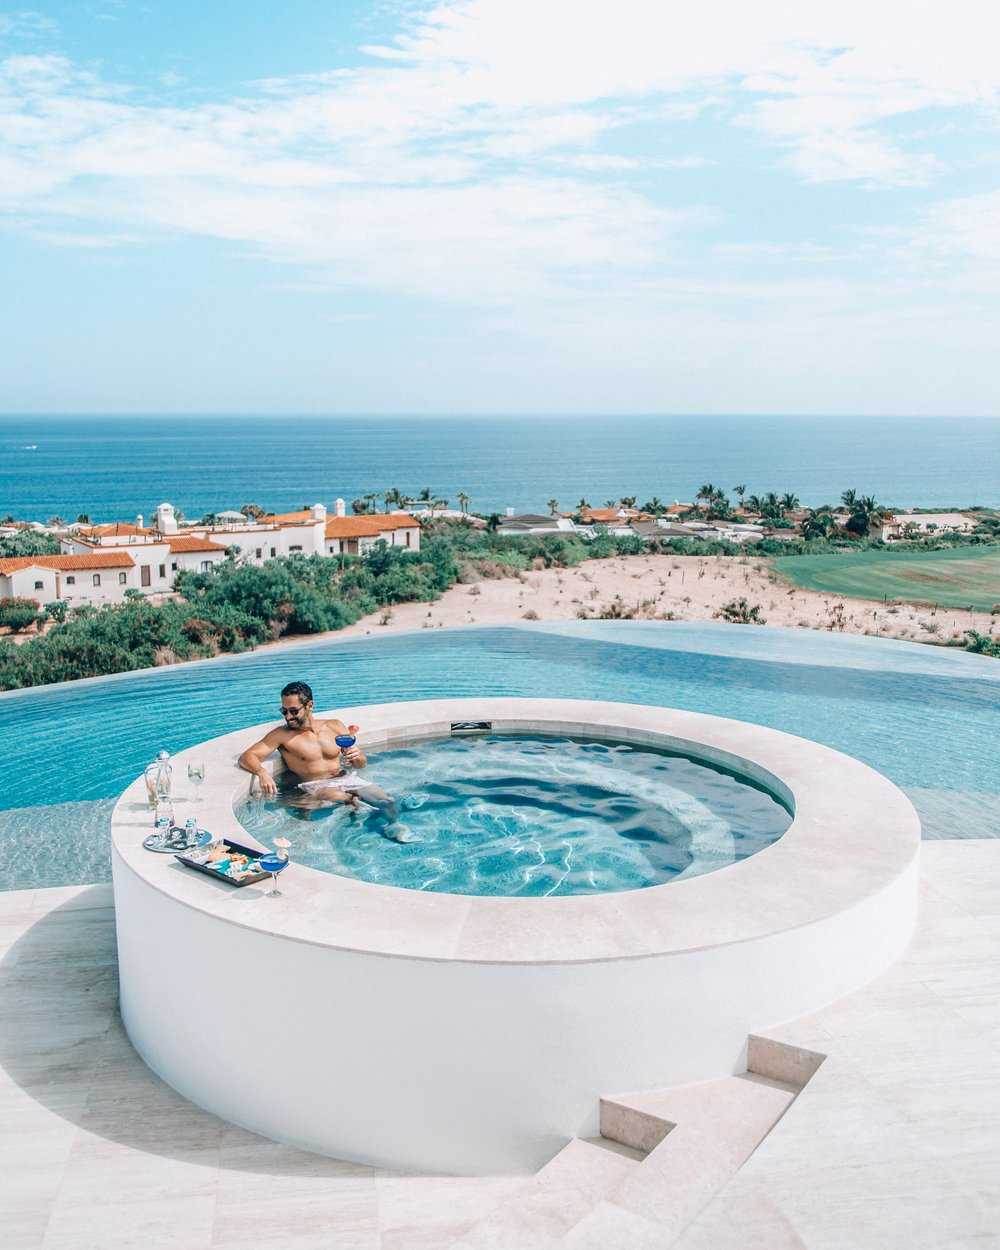 The infinity pool and jacuzzi is where I spent most of my time at Casa Yvonne.